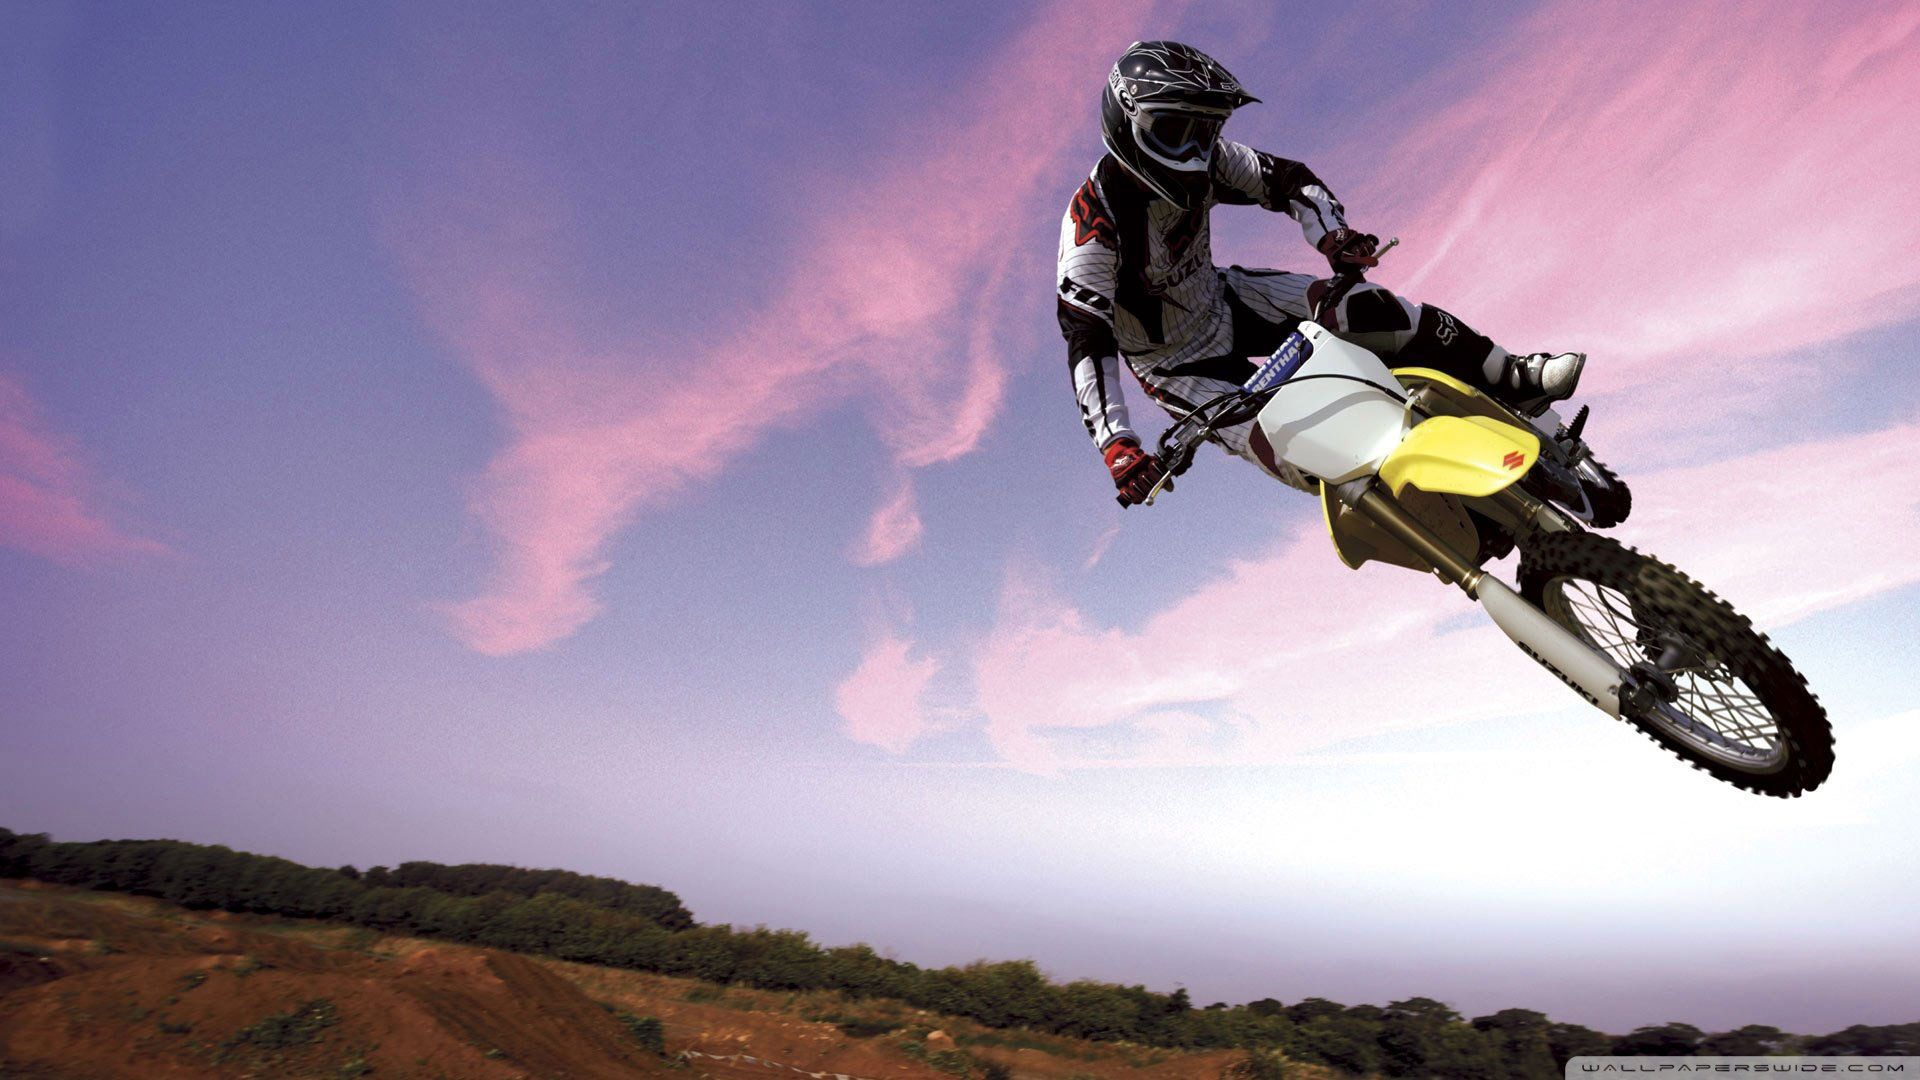 hd pics photos stunning attractive motocross 27 hd desktop